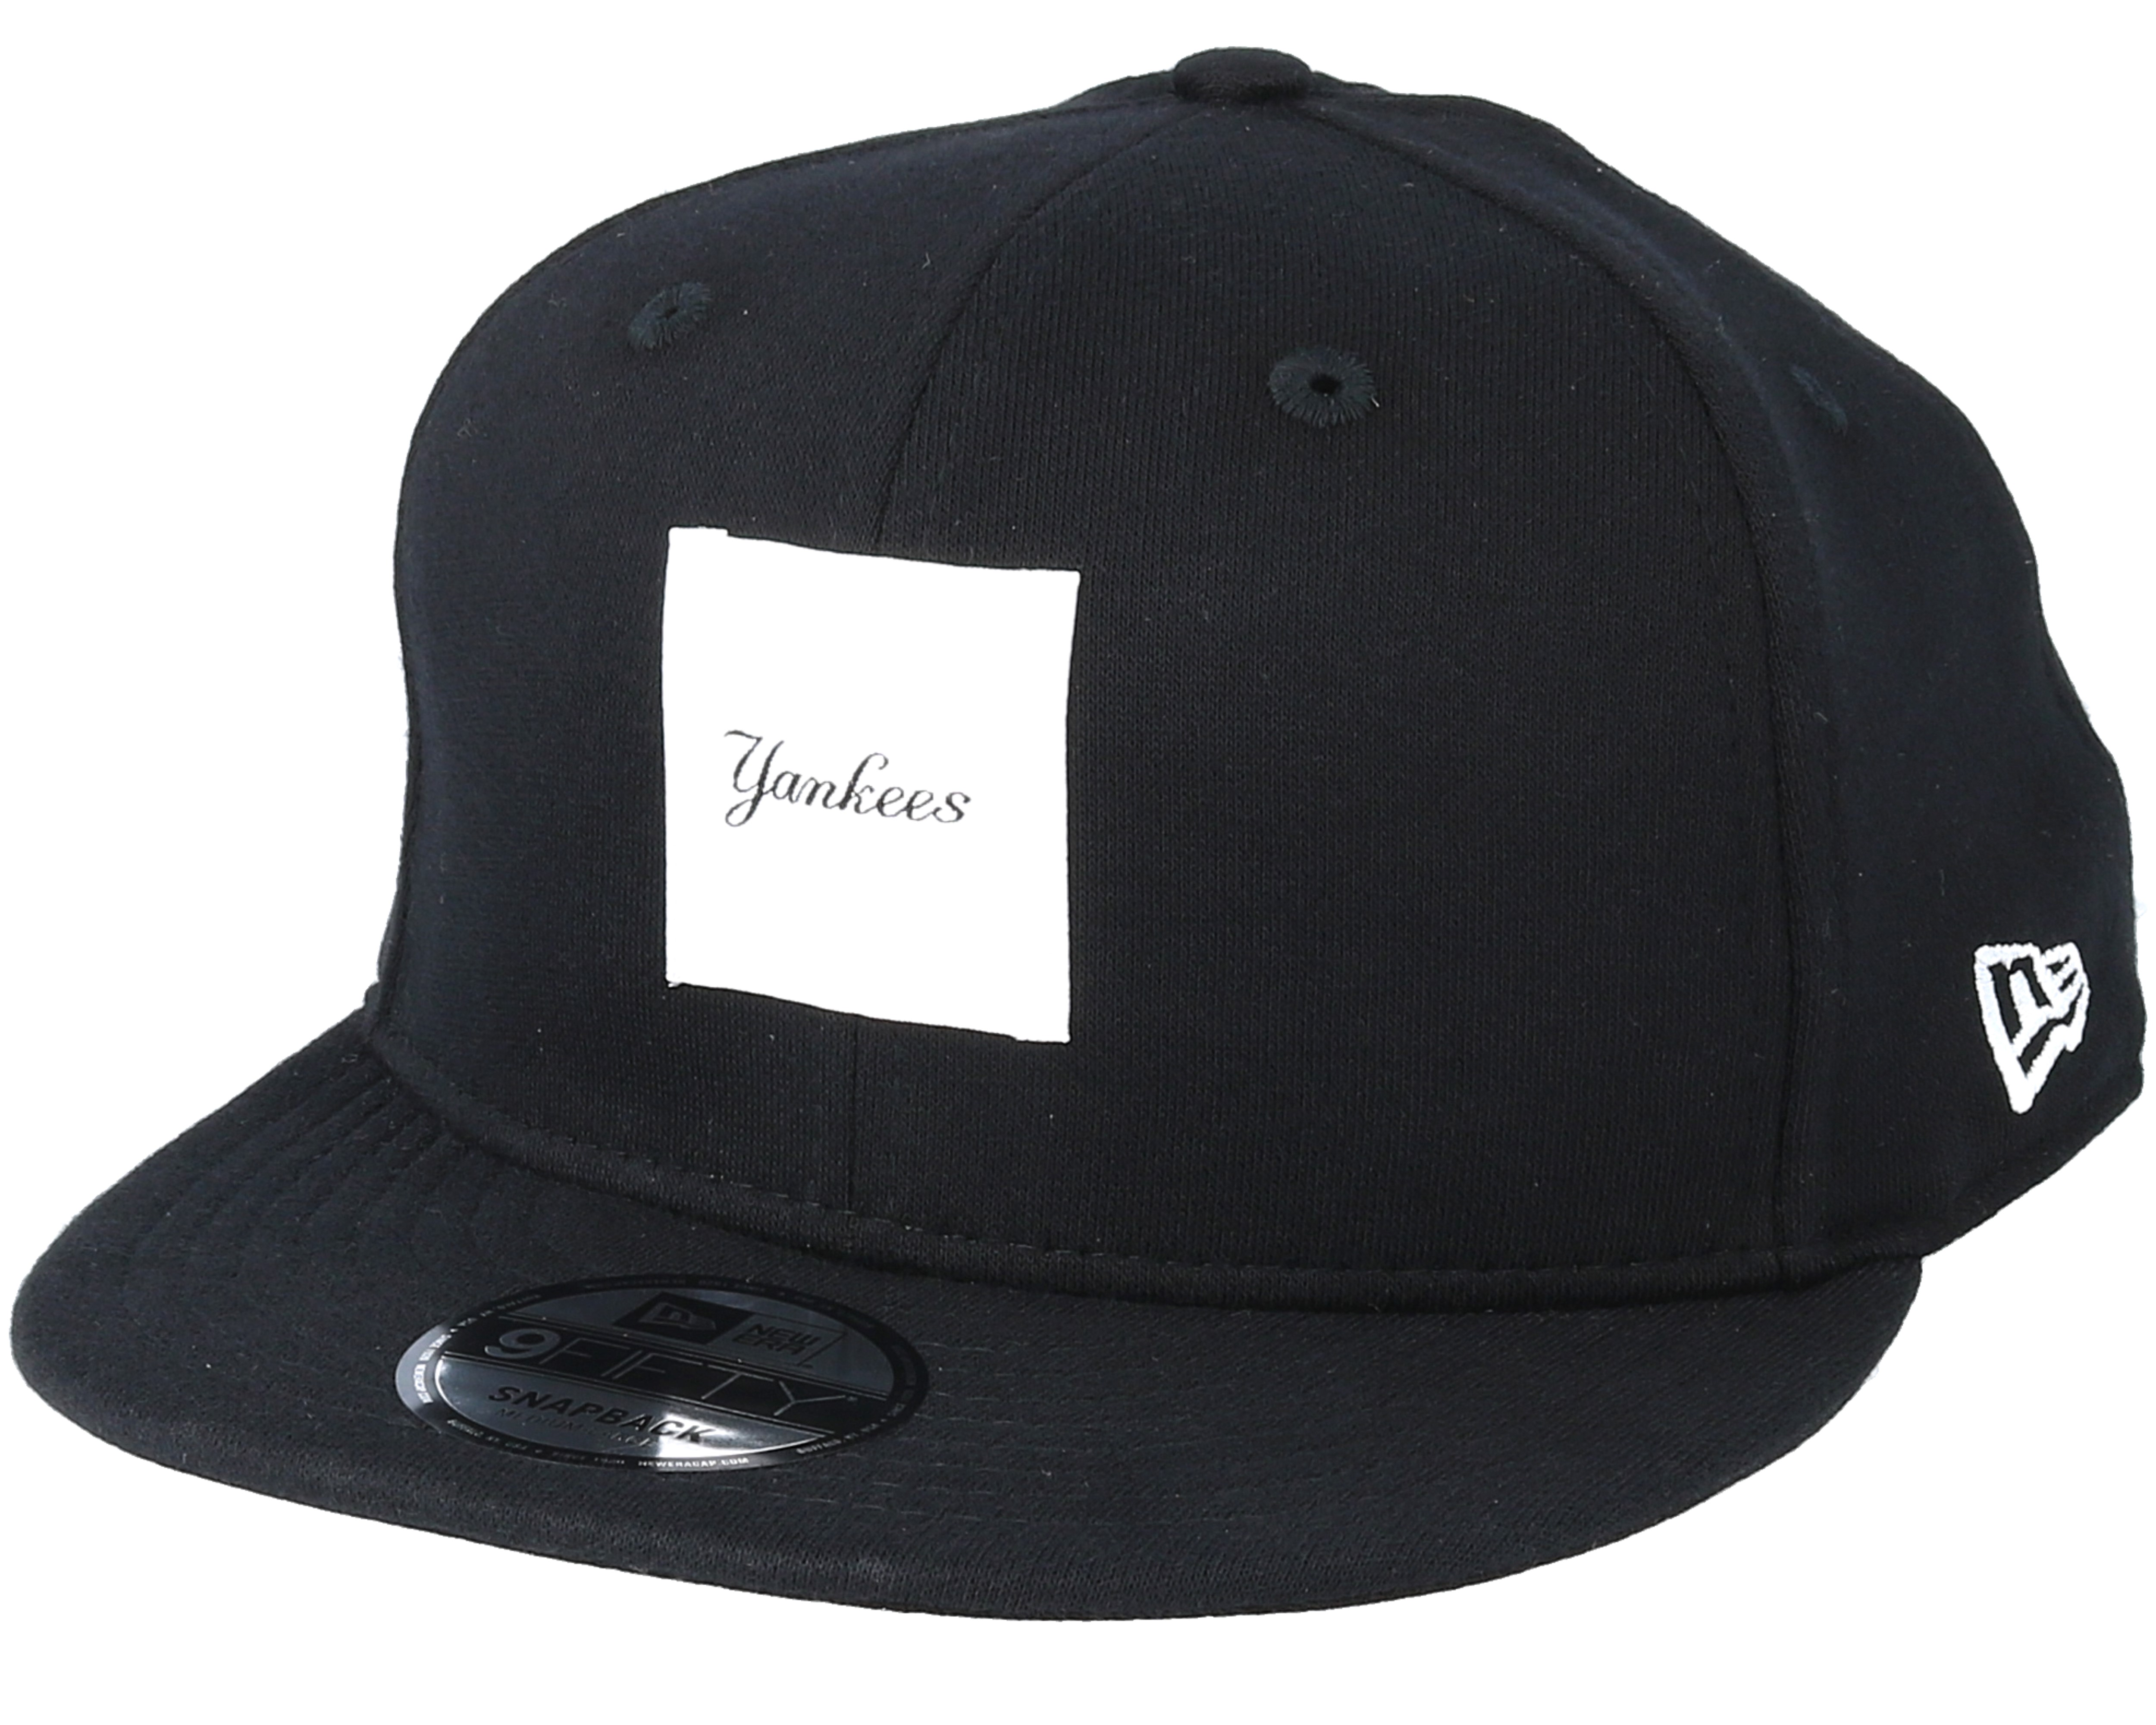 separation shoes 9b842 3ef84 ... where can i buy new york yankees satin patch 9fifty black snapback new  era caps 97d8d